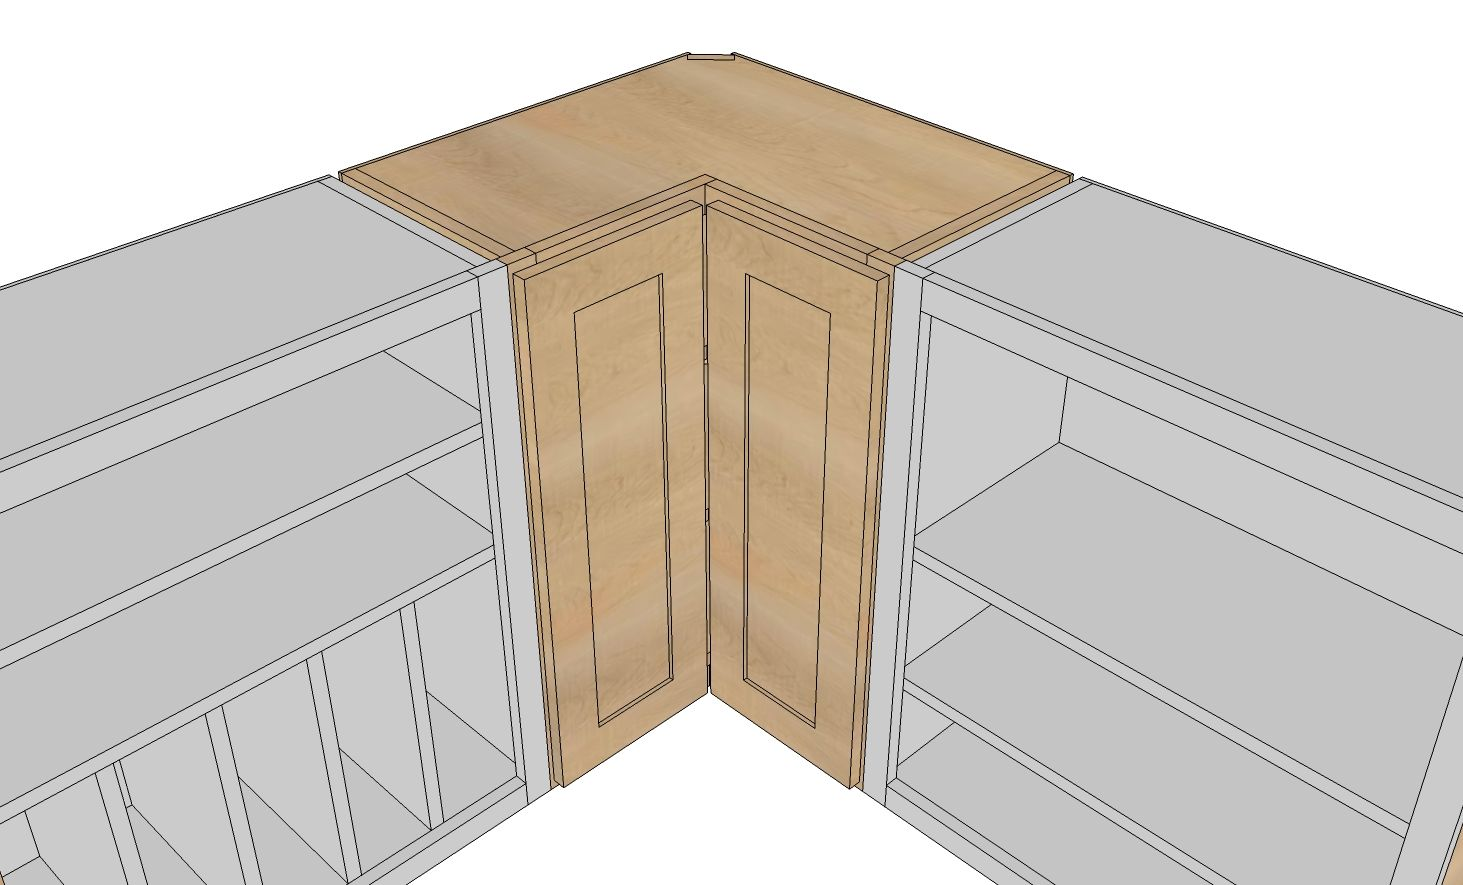 Ana White Build A Wall Corner Pie Cut Kitchen Cabinet Free And Easy DIY P